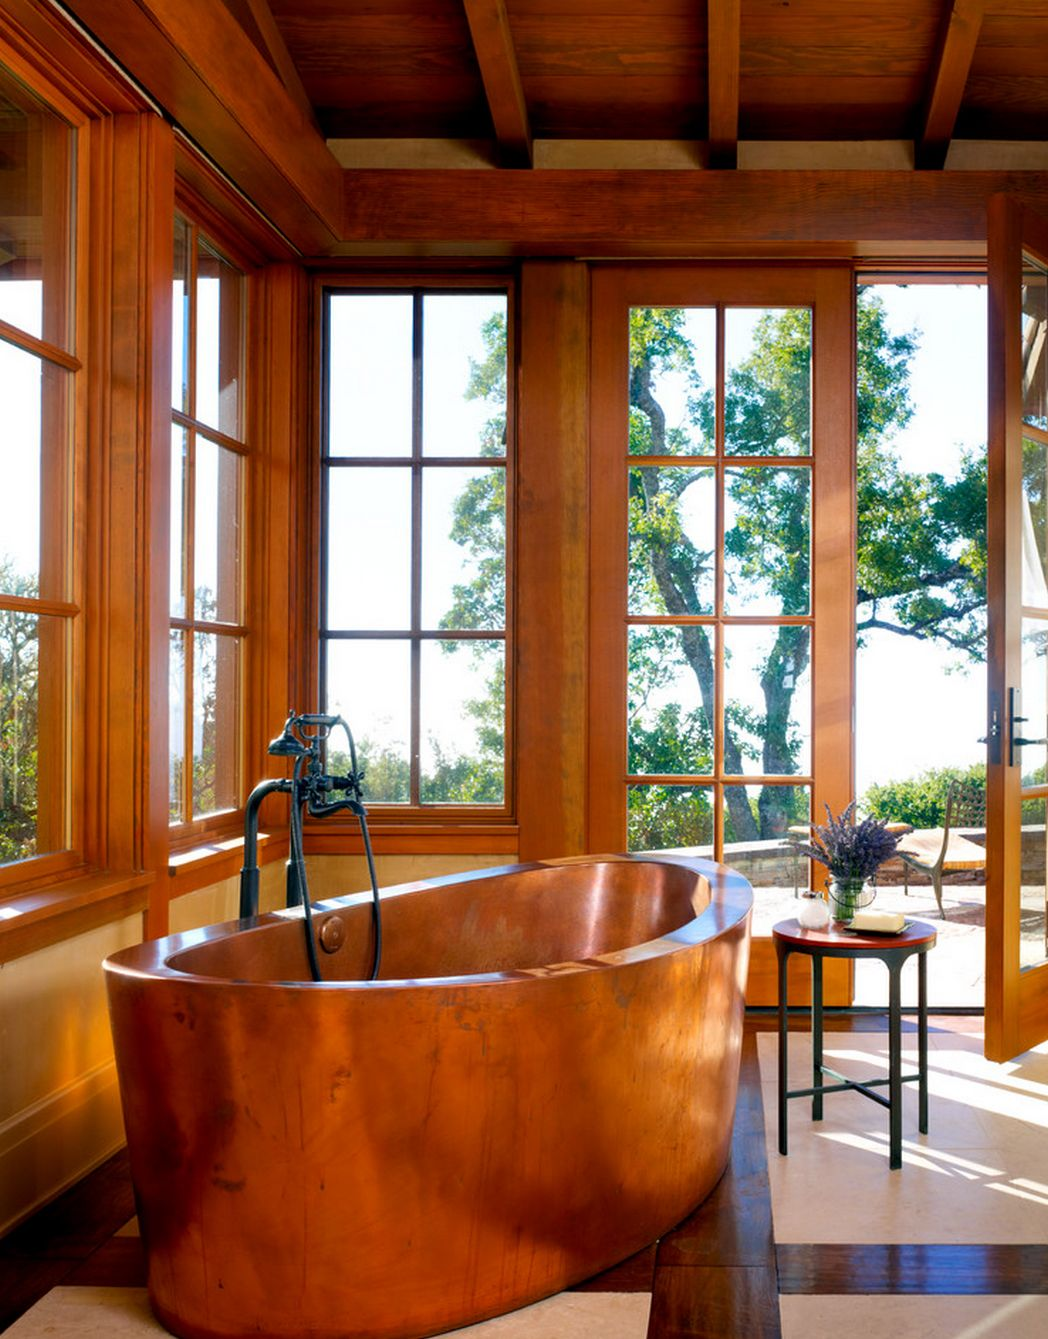 ARTmetal © ideas. www.aias.se Copper Soaking Tub by Diamond Spas ...